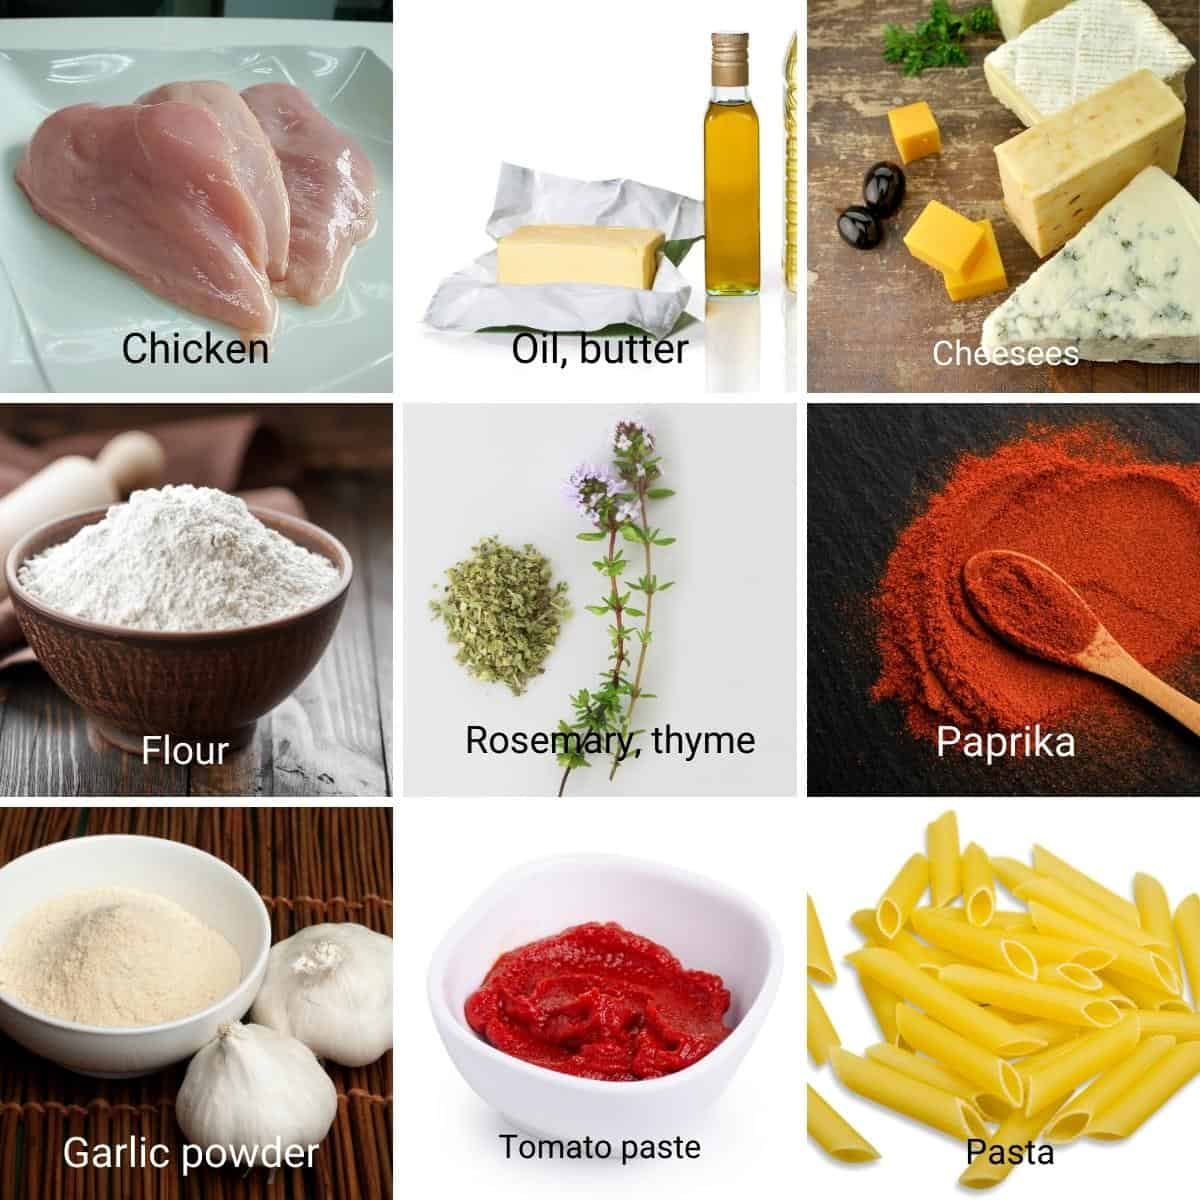 Ingredients shot collage for Pasta with chicken breast.